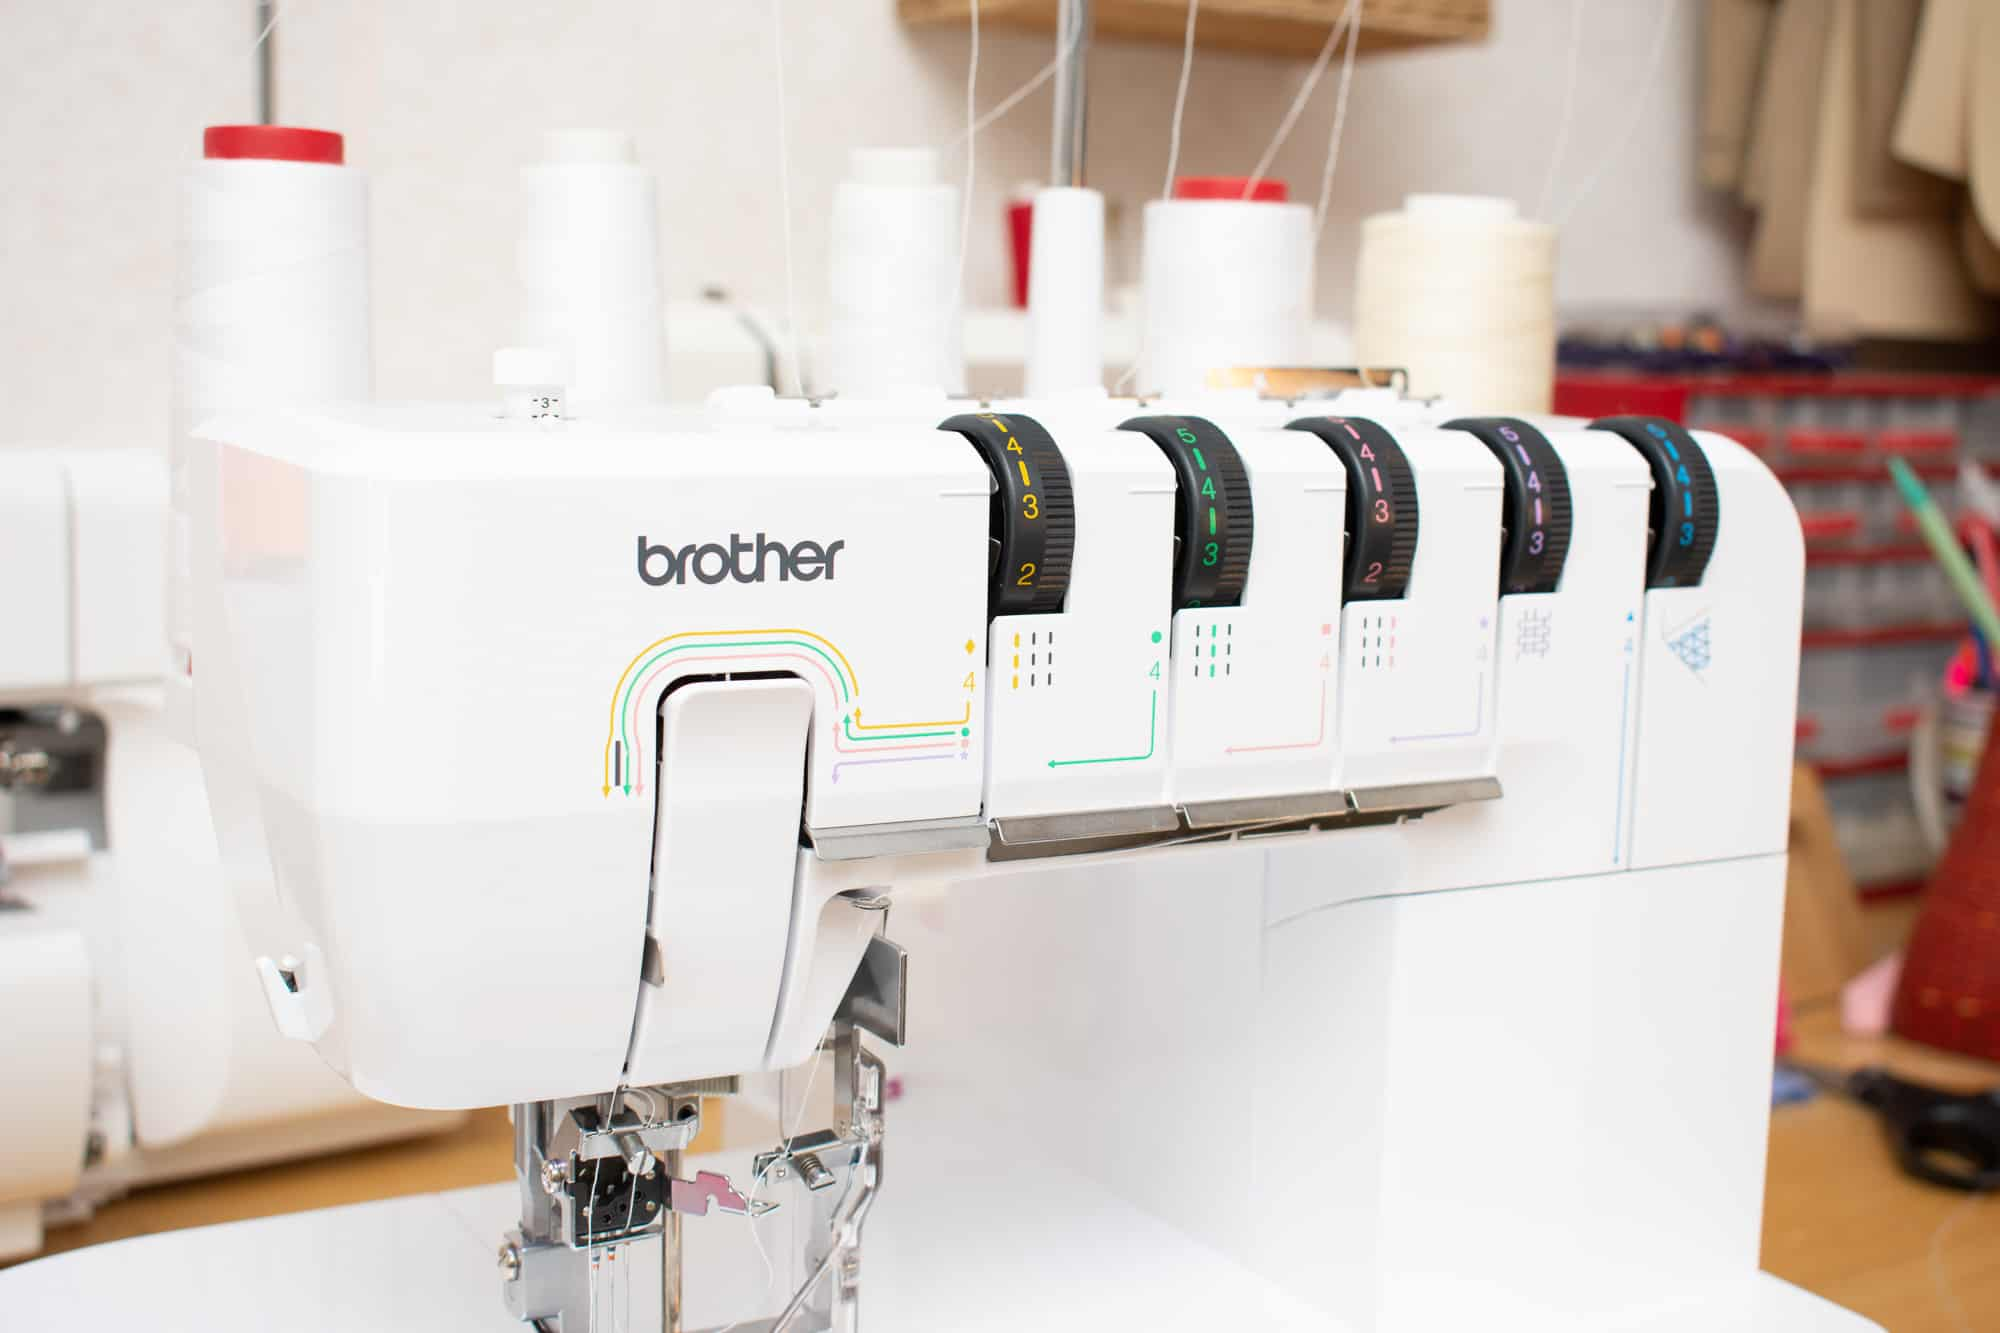 Brother CV3550 Coverstitch review